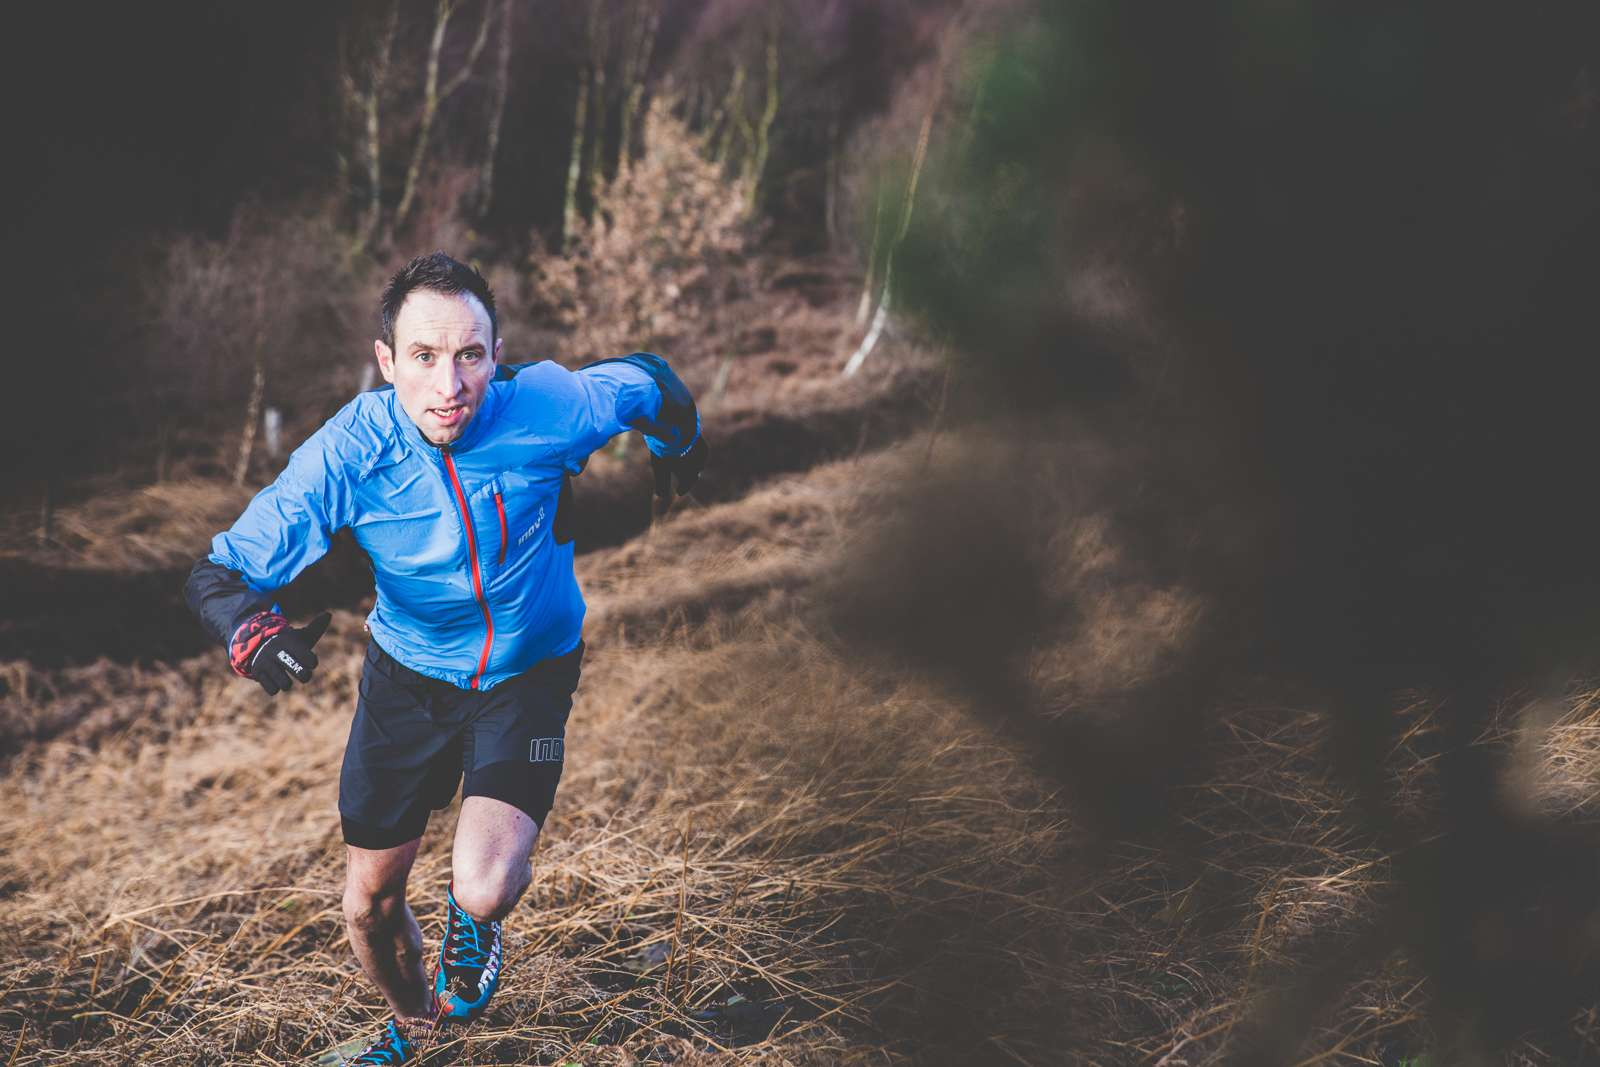 Going off-trail and tackling all terrains imaginable, Ben Mounsey can't wait to get stuck into another season of fell running. All Photos by Robbie Jay Barratt. Kit: X-Talon 212 | Race Elite Windshell FZ | Race Ultra Twin Short | Raceglove